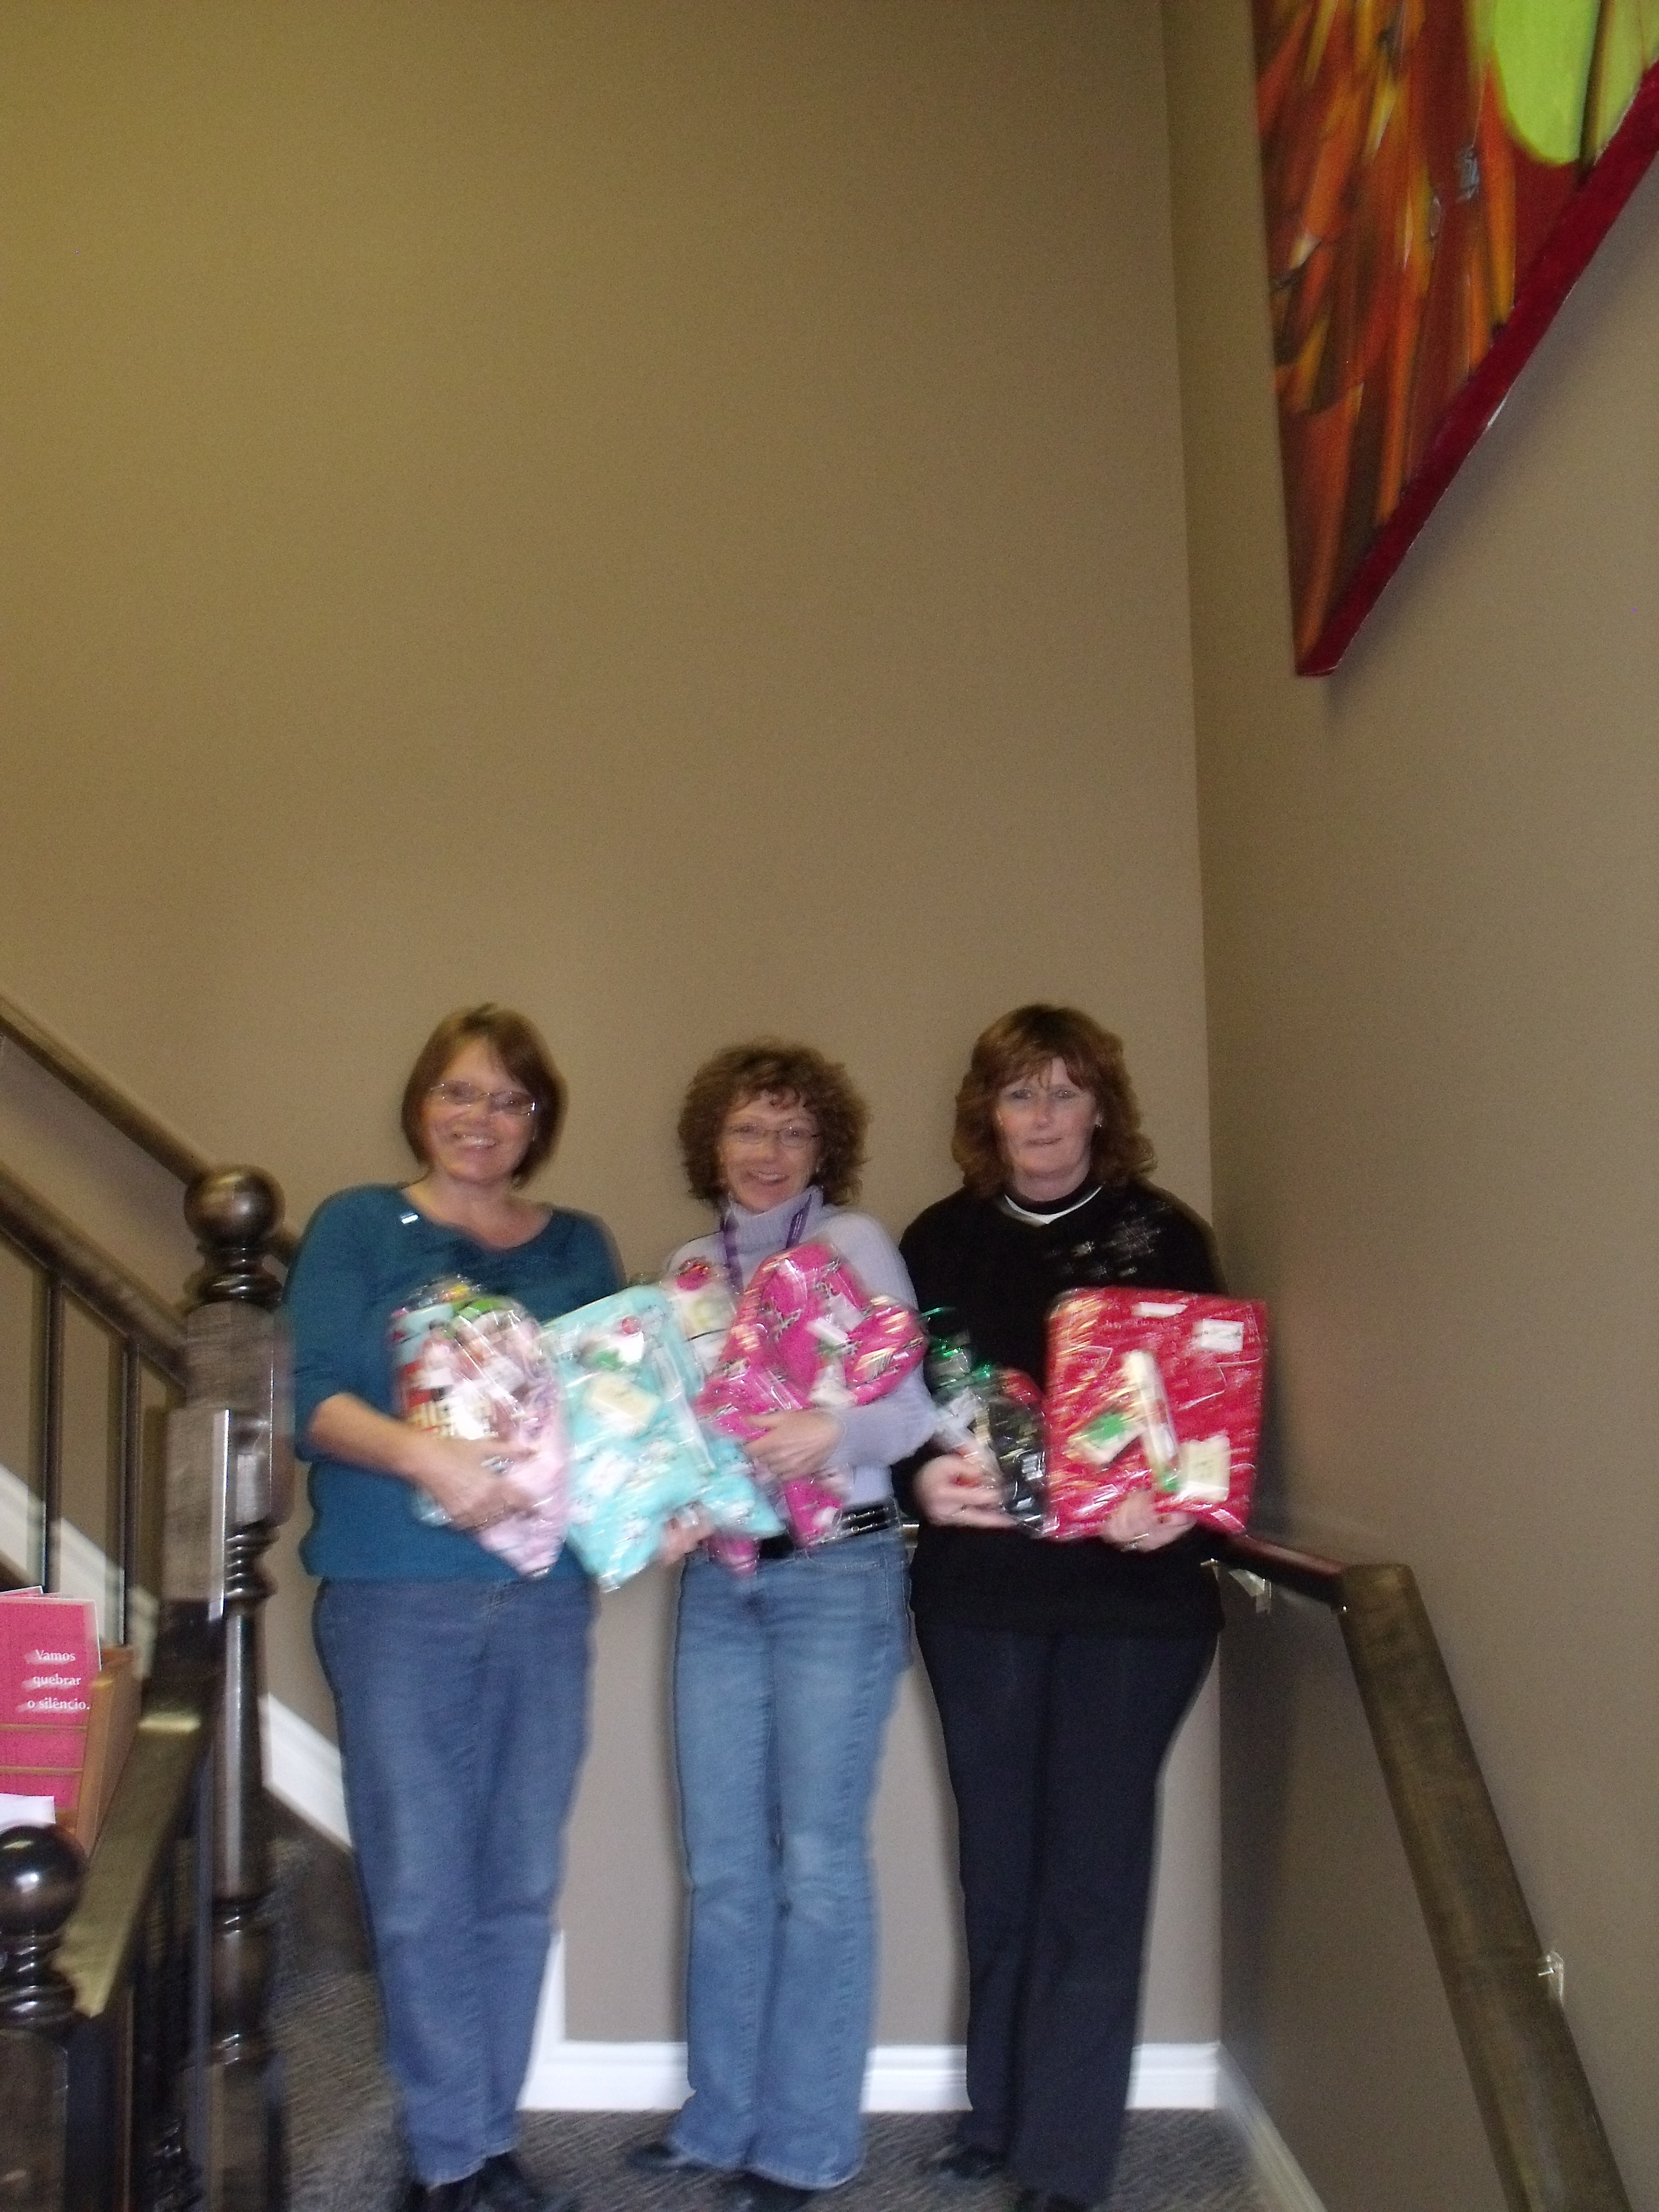 Penny-Lorna-Rosemary-Taylor-from-Guelph-Women-Crisis.jpg